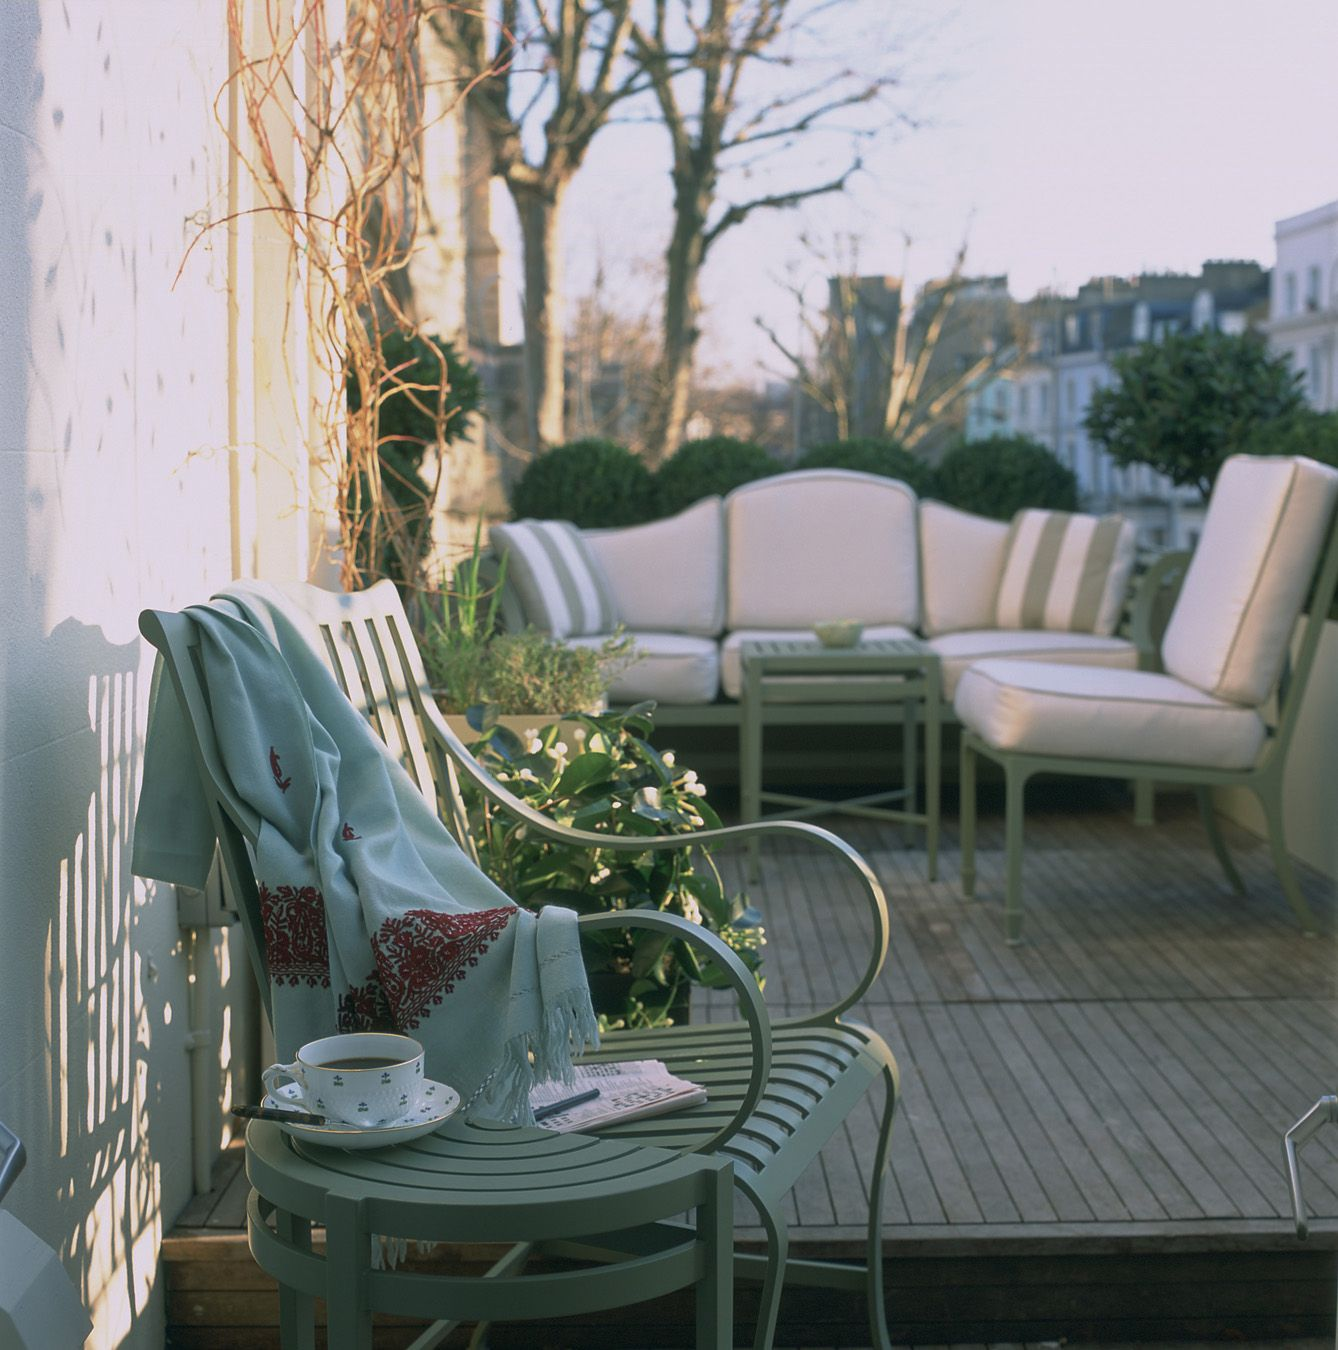 Roof Terrace of Notting Hill Town House